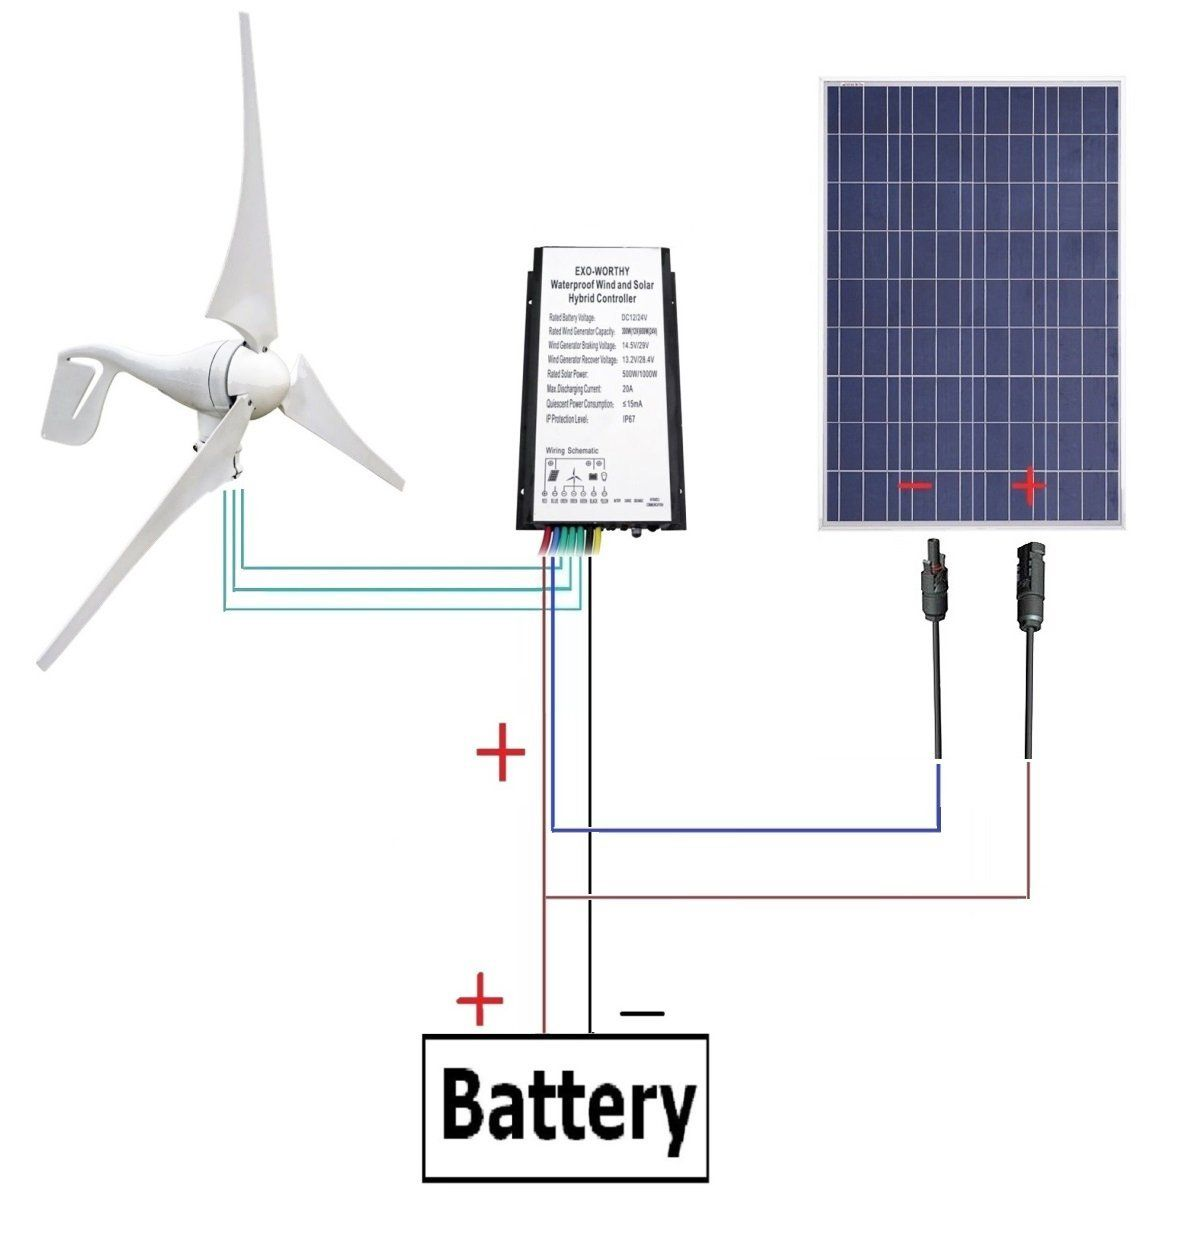 Amazoncom Eco Worthy 400w Wind Turbine Generator 100w 12 Volt Battery Line Diagram Wiring Schematic Polycrystalline Solar Panel For Off Grid Charging Patio Lawn Garden